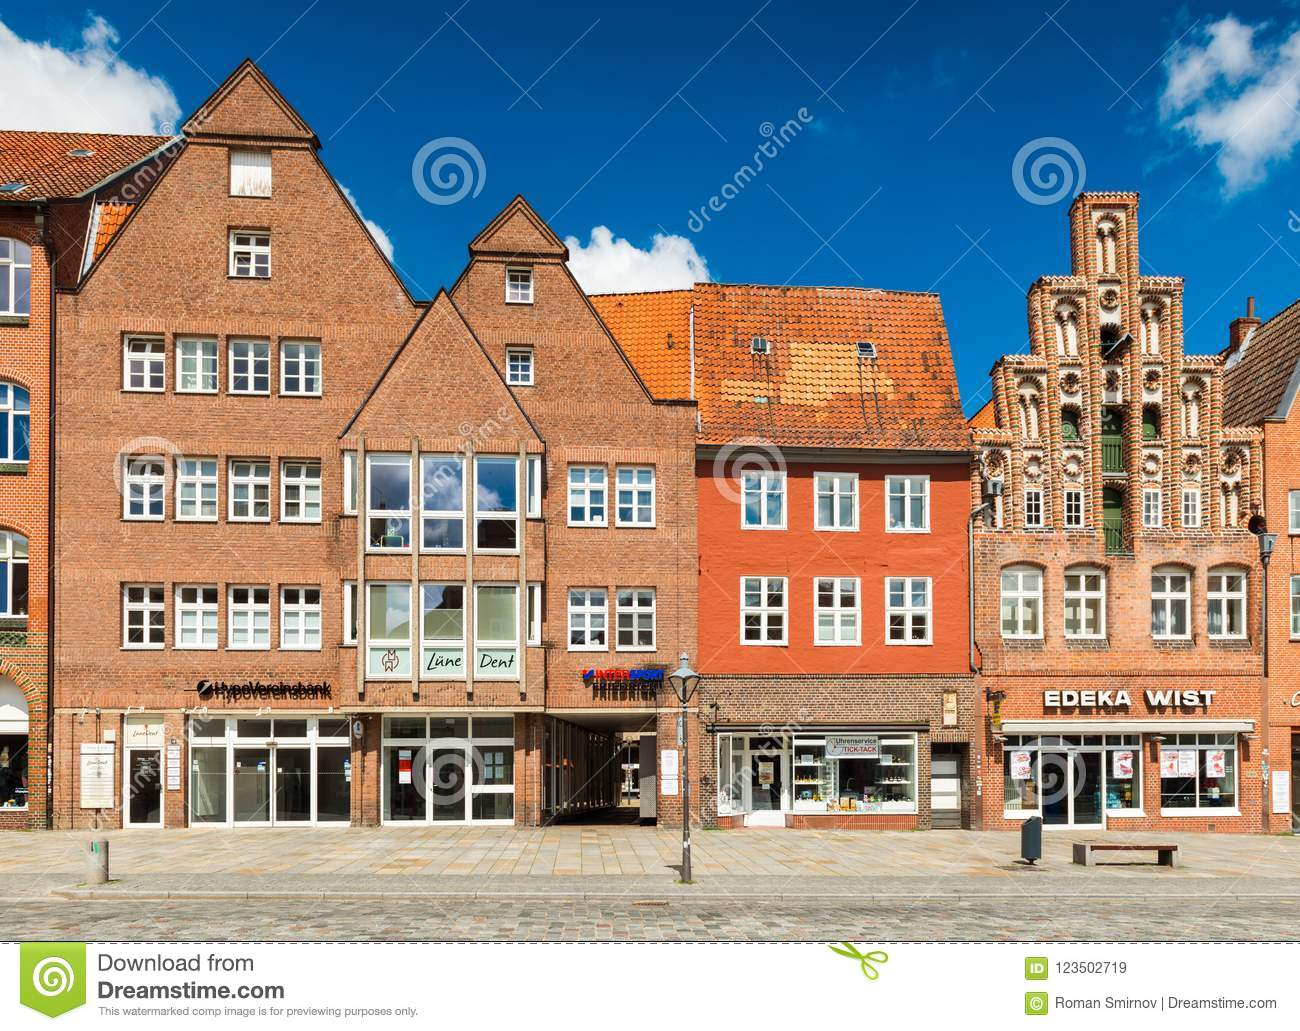 Luneburg, Germany: Facades of houses in different architectural styles